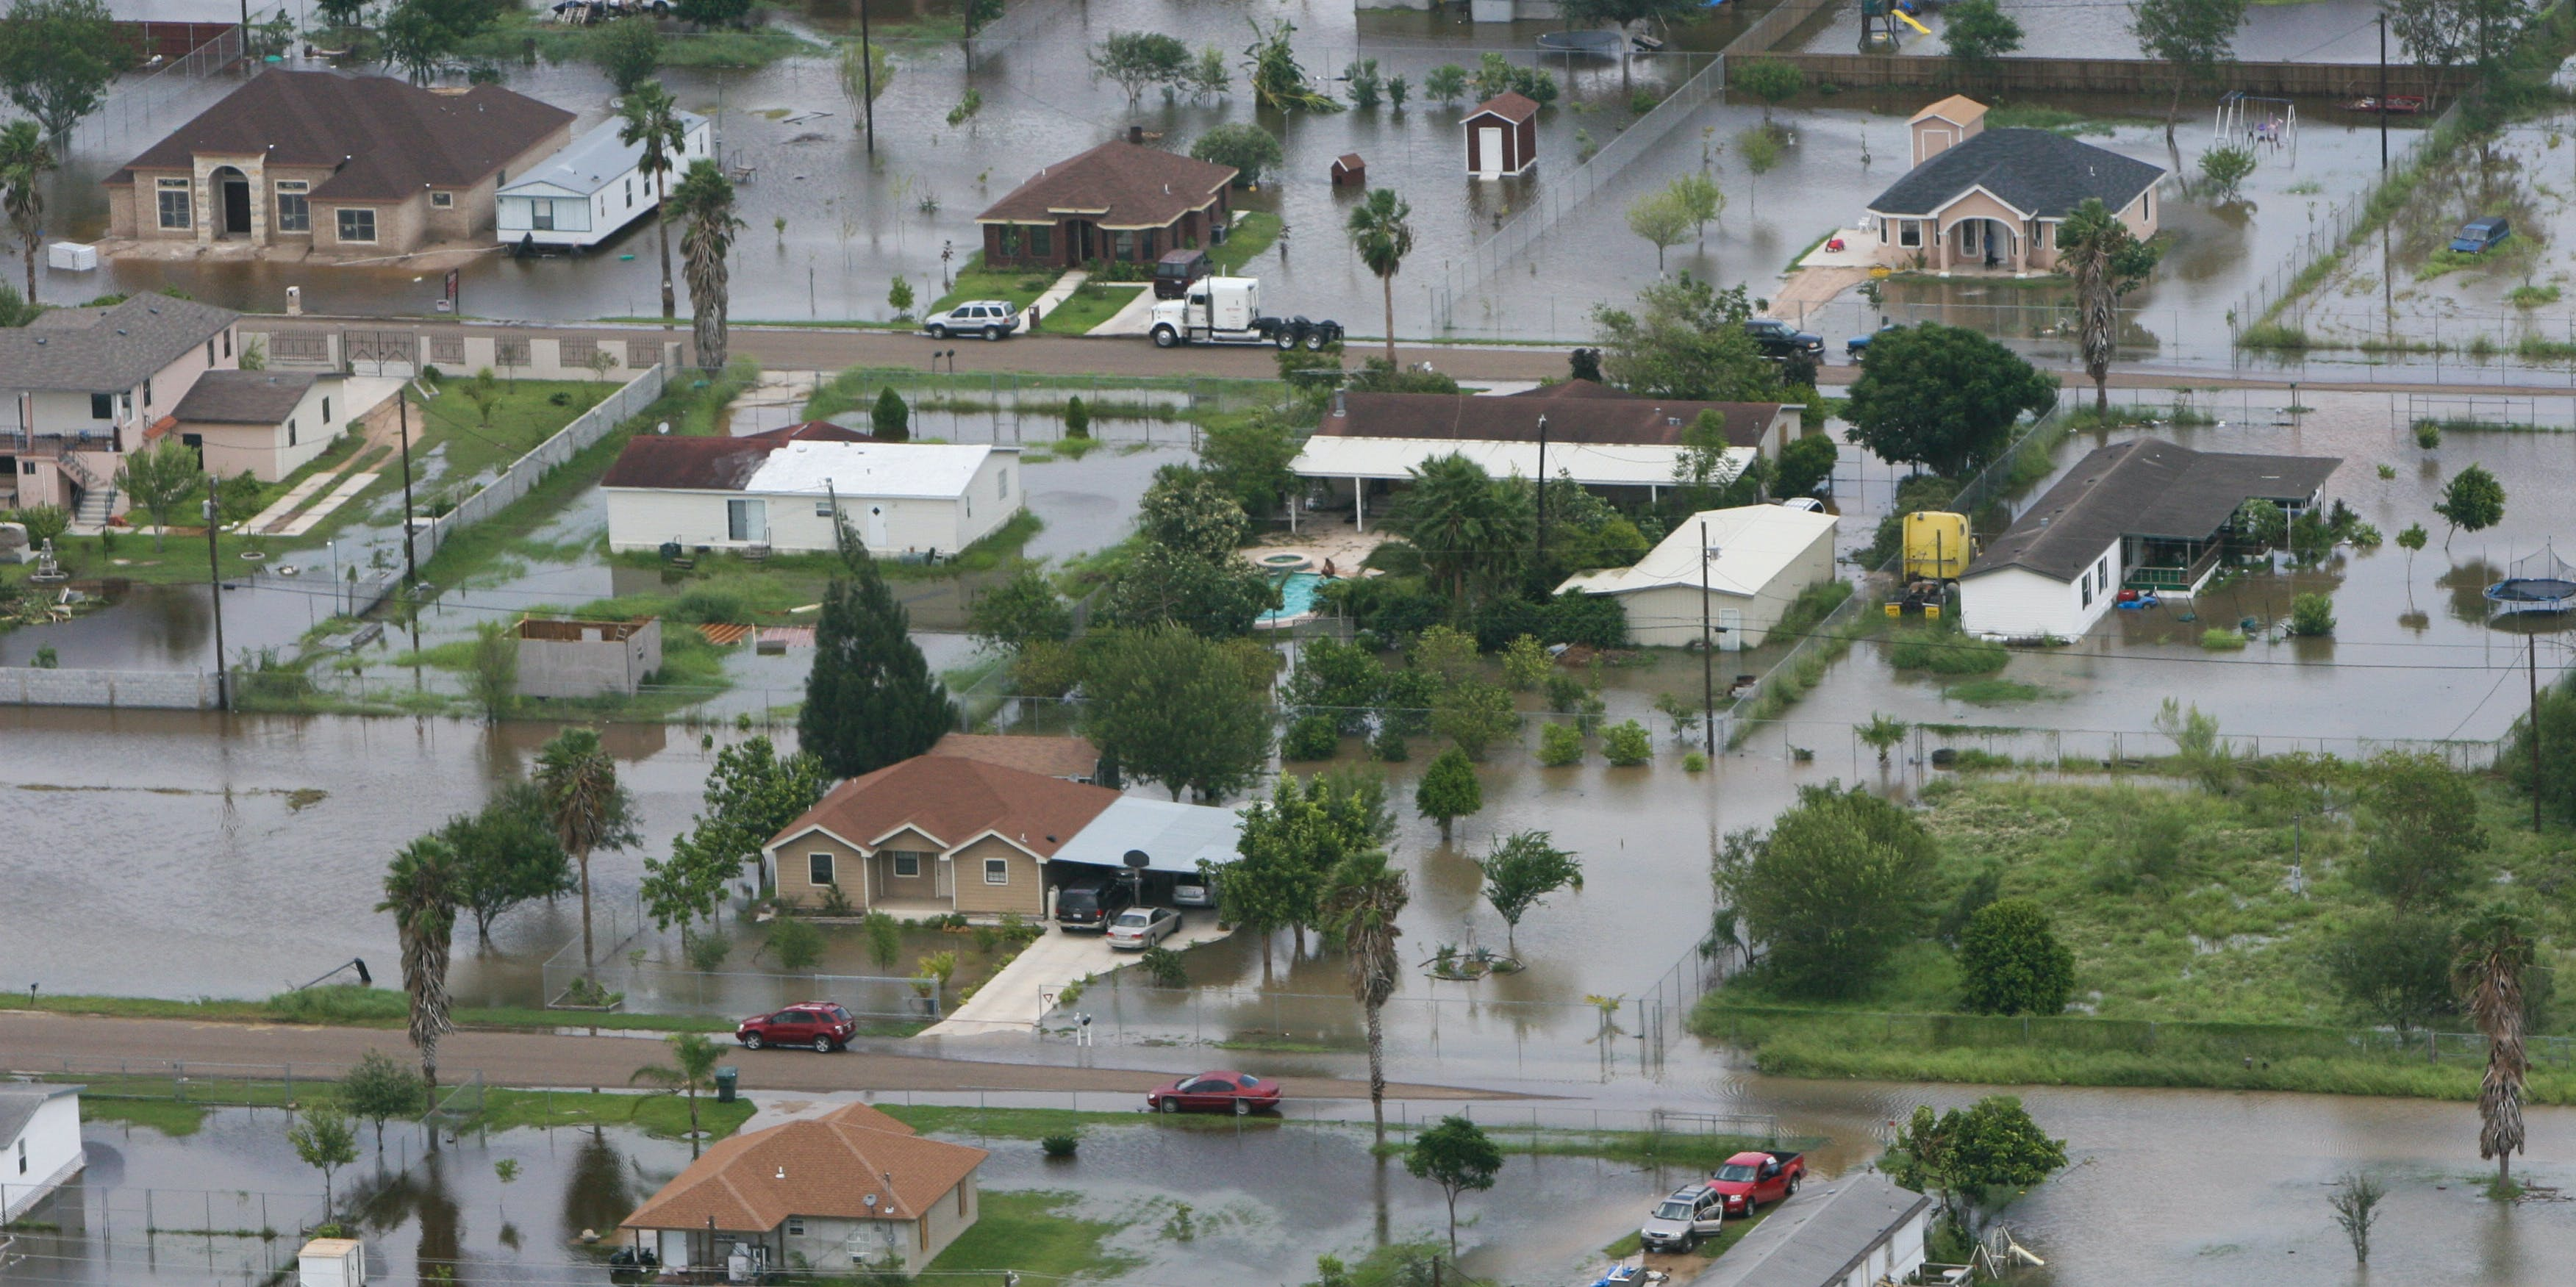 Streets are flooded in Raymondville, Texas, in the aftermath of Hurricane Ike.